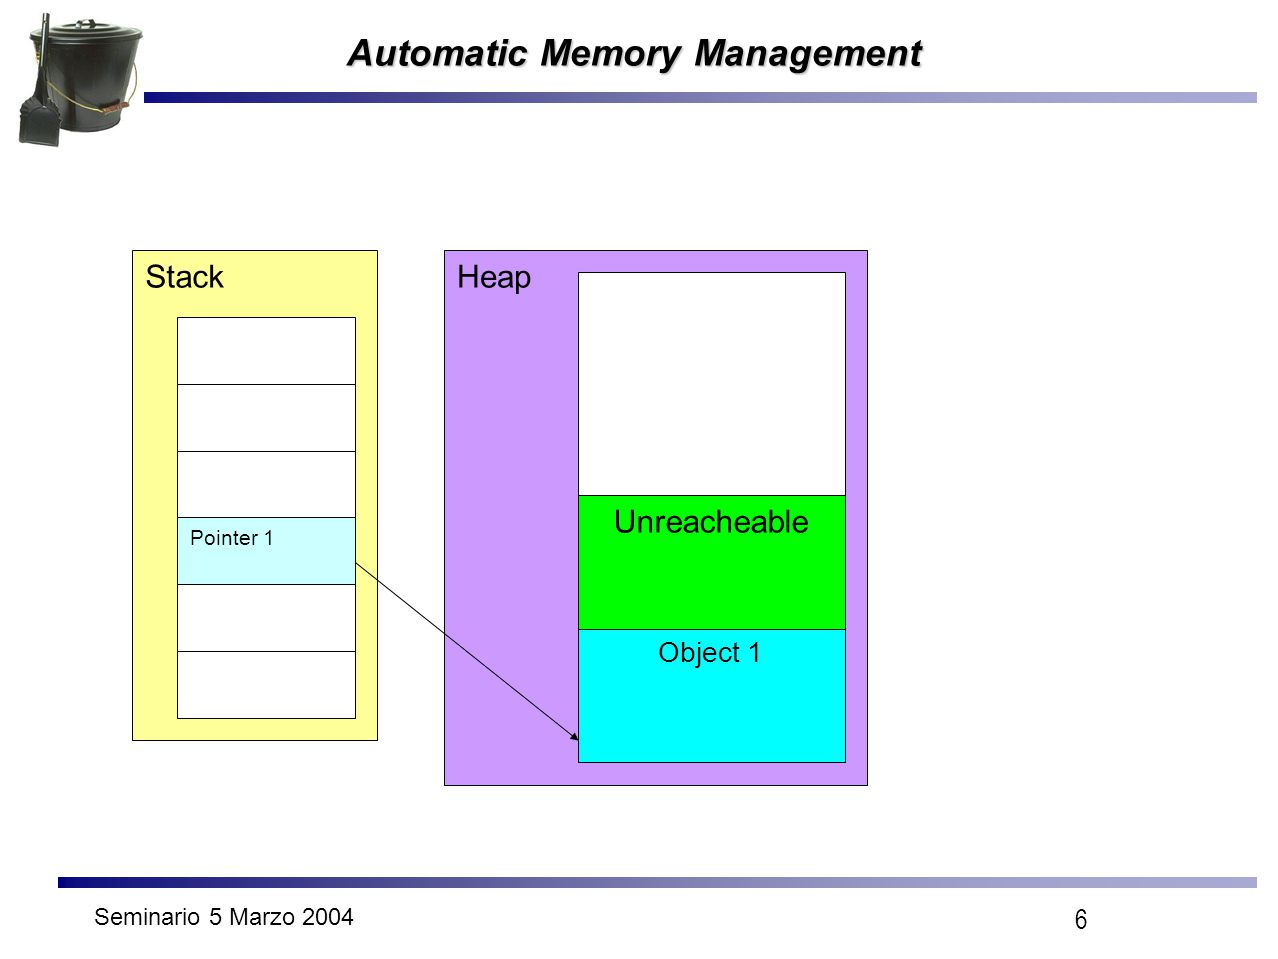 Seminario 5 Marzo 2004 6 Automatic Memory Management Stack Pointer 1 Heap Unreacheable Object 1